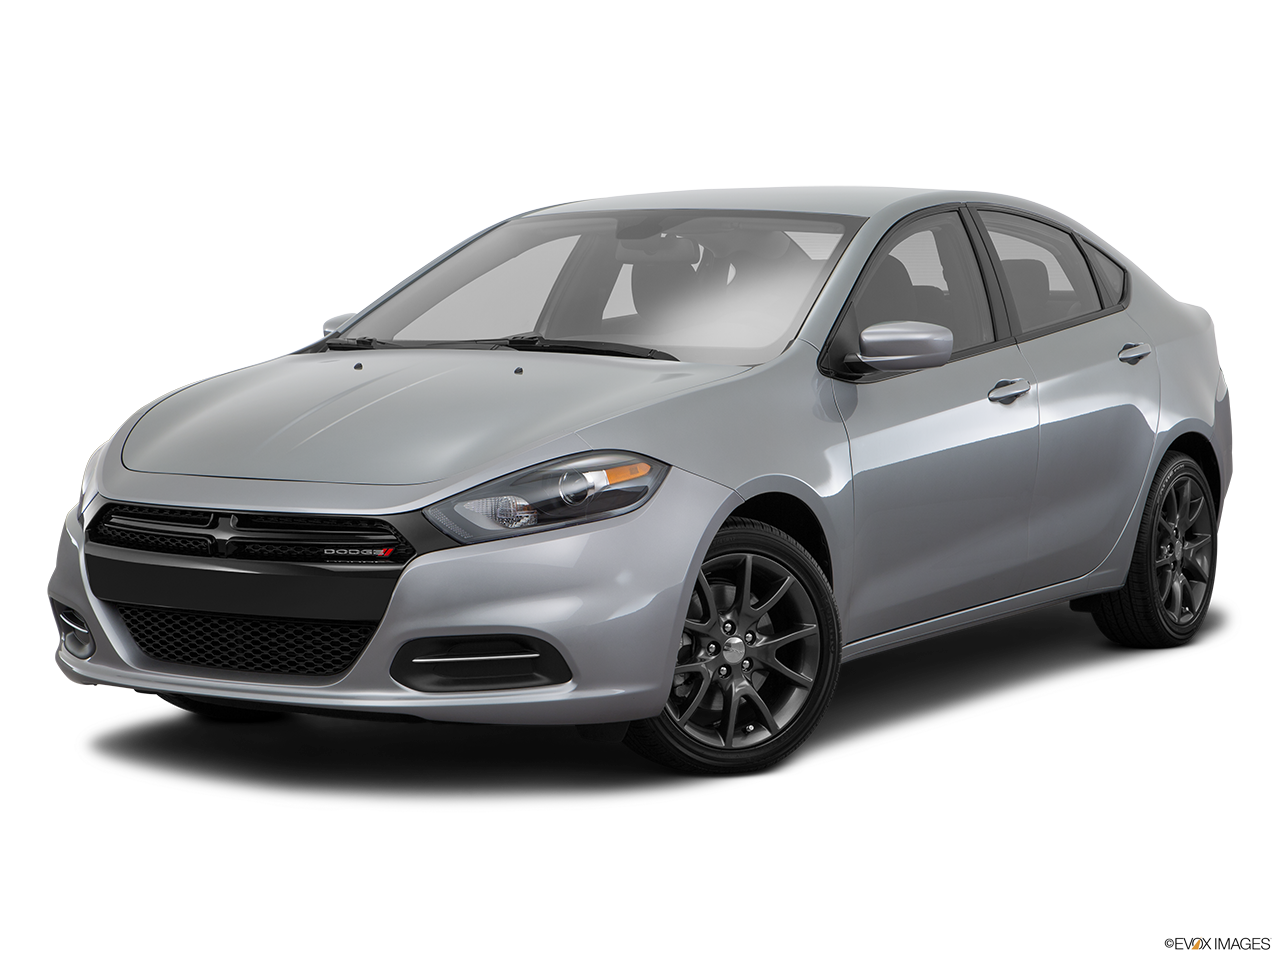 Test Drive A 2016 Dodge Dart at John L Sullivan Chrysler Dodge Jeep Ram in Yuba City